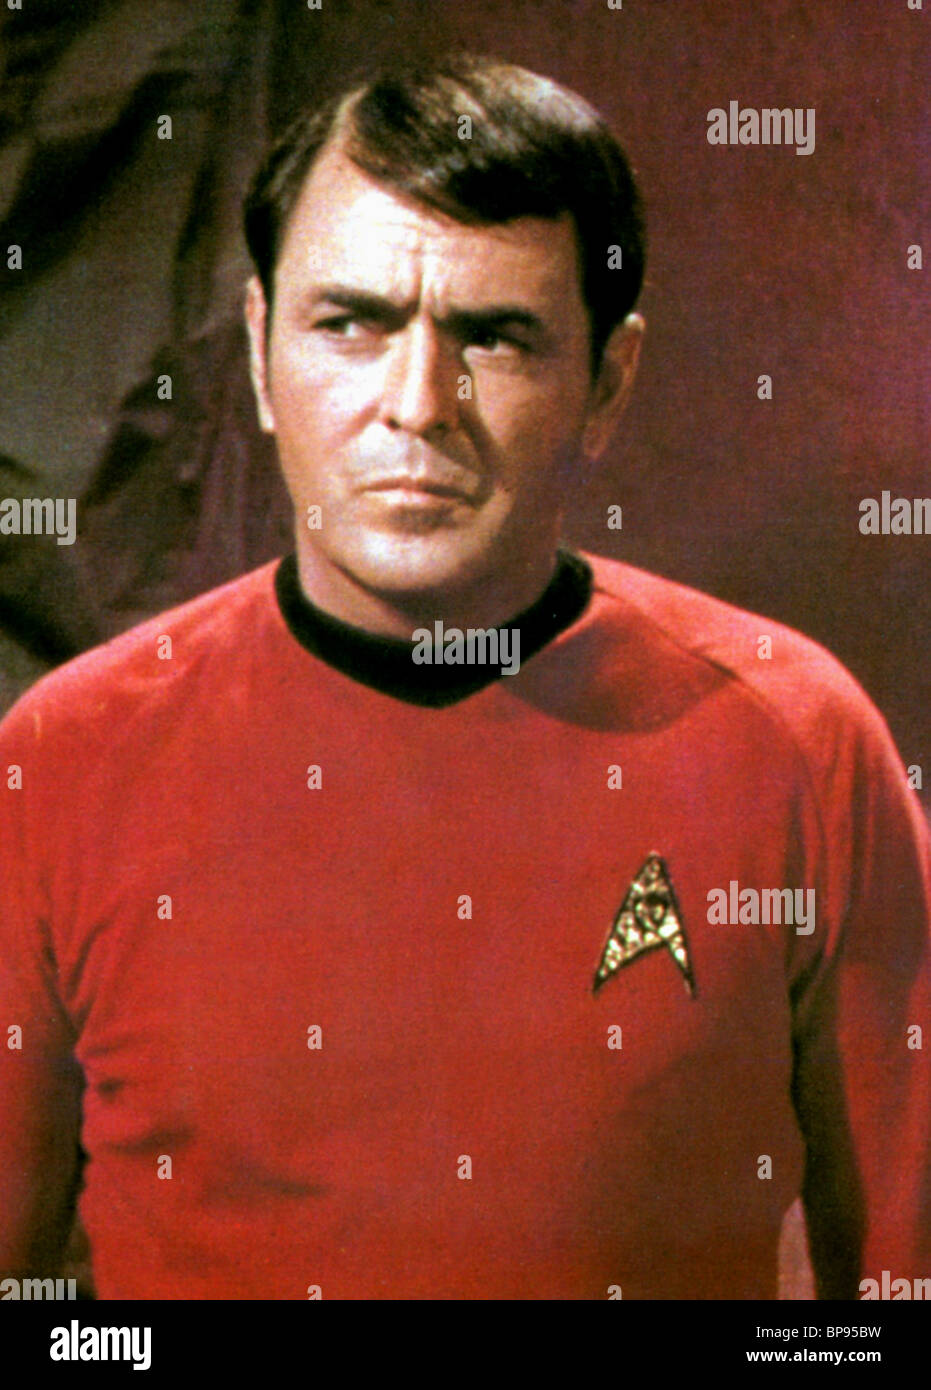 James Doohan James Doohan new picture